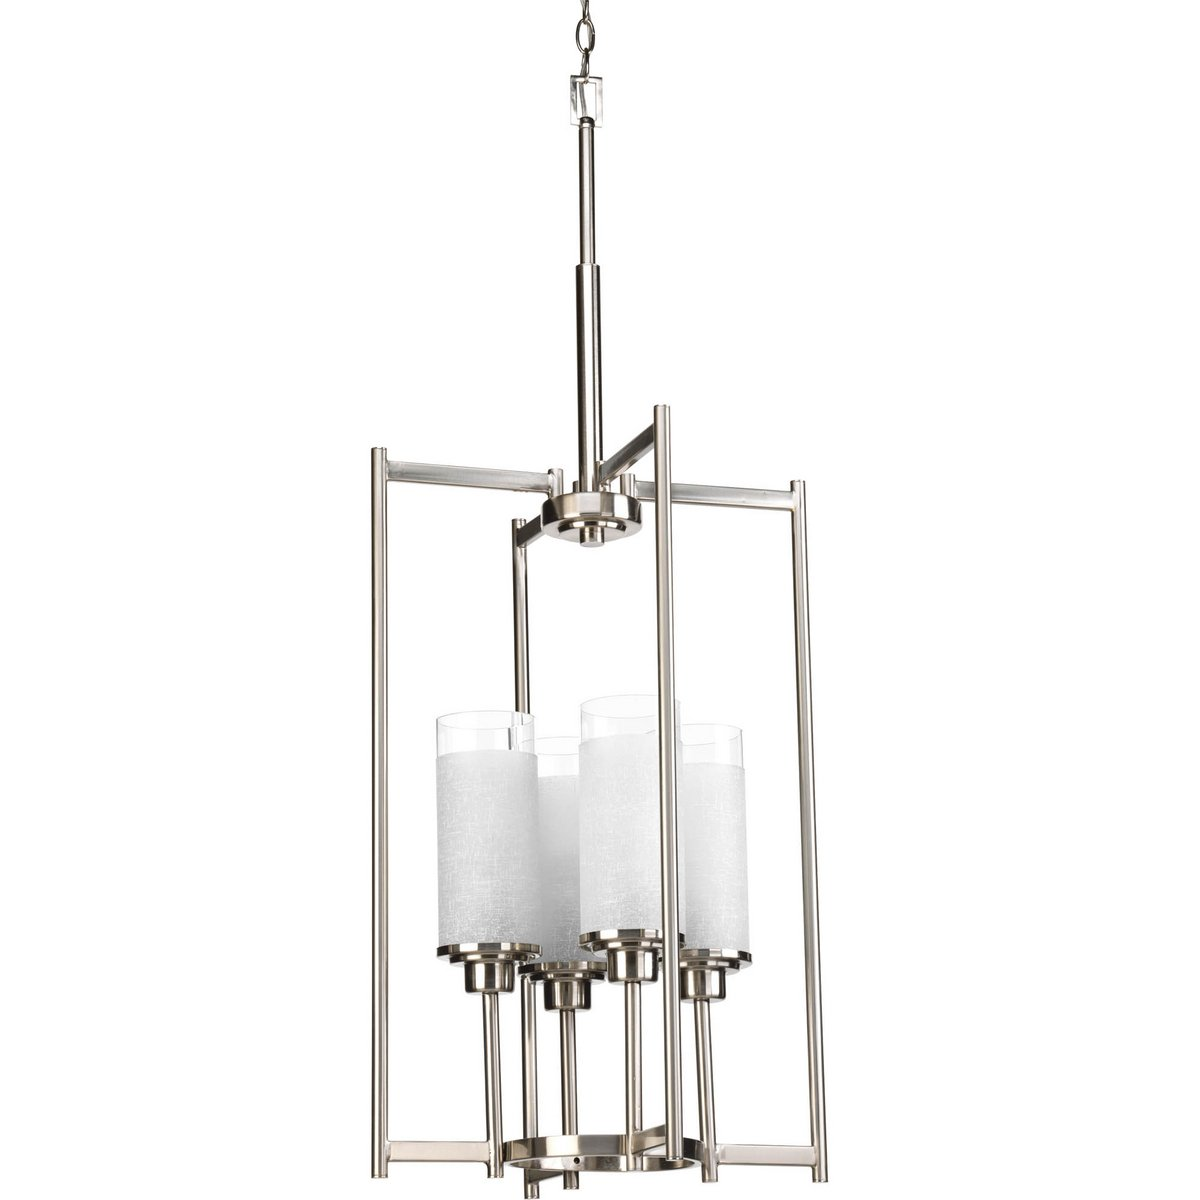 Progress Lighting P3977-09 Transitional Four Light Foyer Pendant from Alexa Collection in Pwt, Nckl, B/S, Slvr. Finish, Brushed Nickel